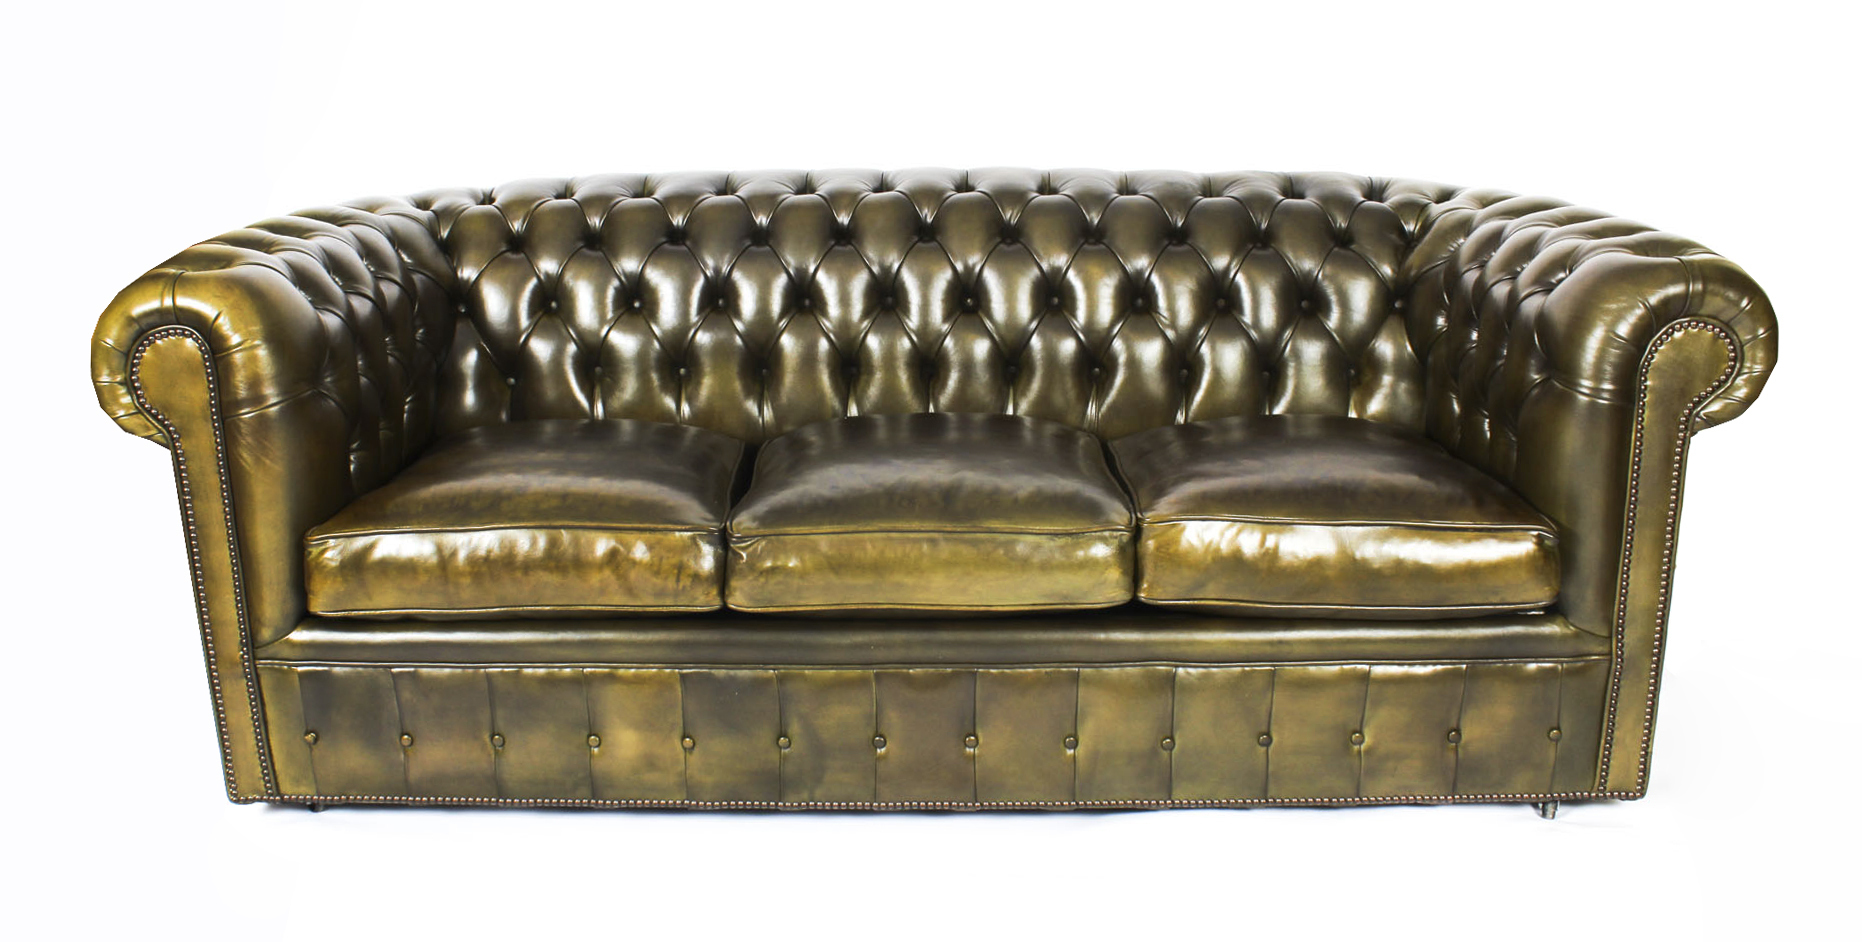 - Bespoke English Leather Chesterfield Sofa Bed Olive Green Vinterior